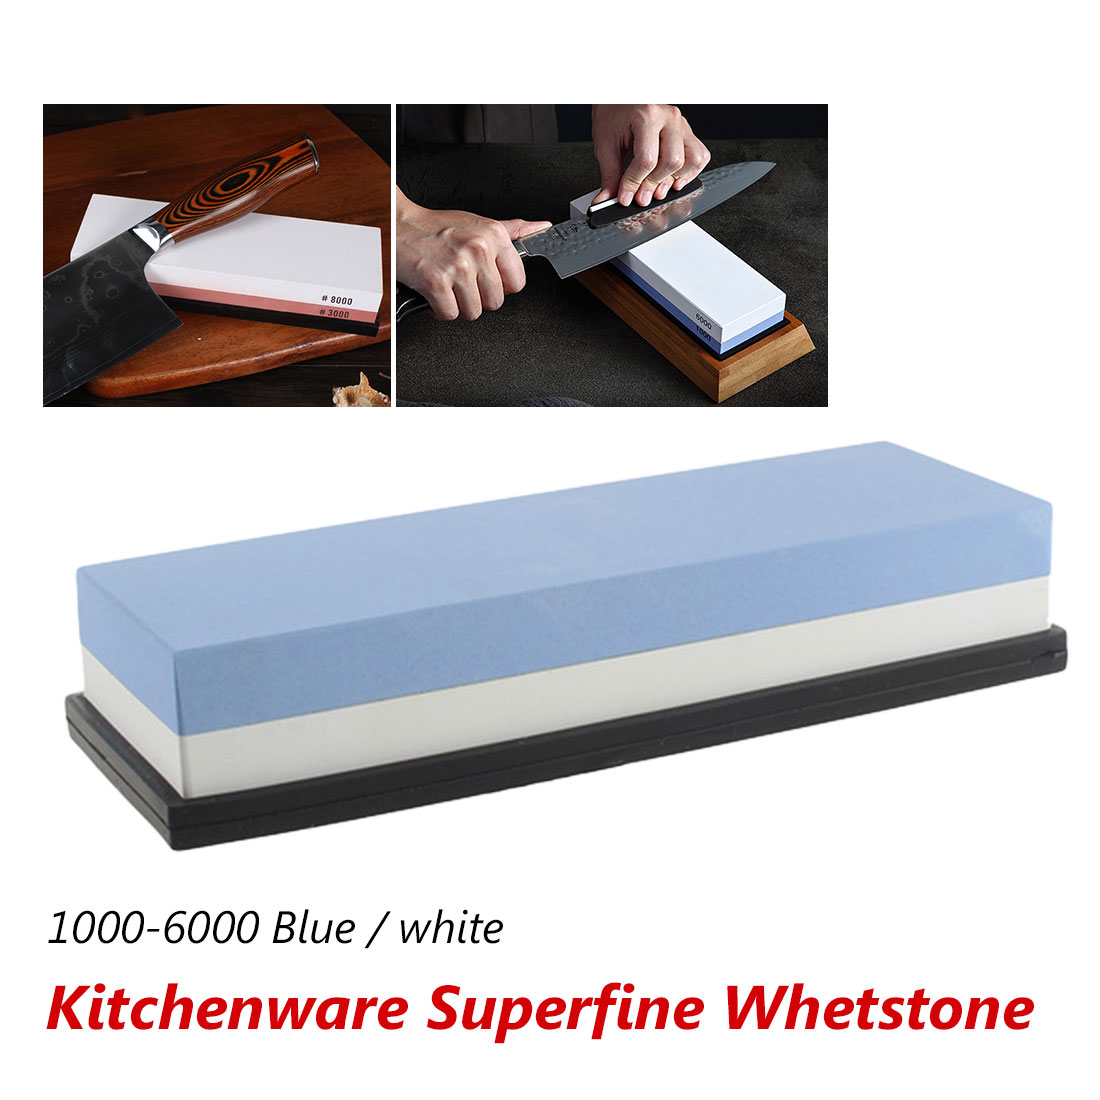 Sharpening Stone <font><b>Whetstone</b></font> Knife Sharpener Dual Sided <font><b>1000/6000</b></font> Grit Combination Knife for Kitchen image